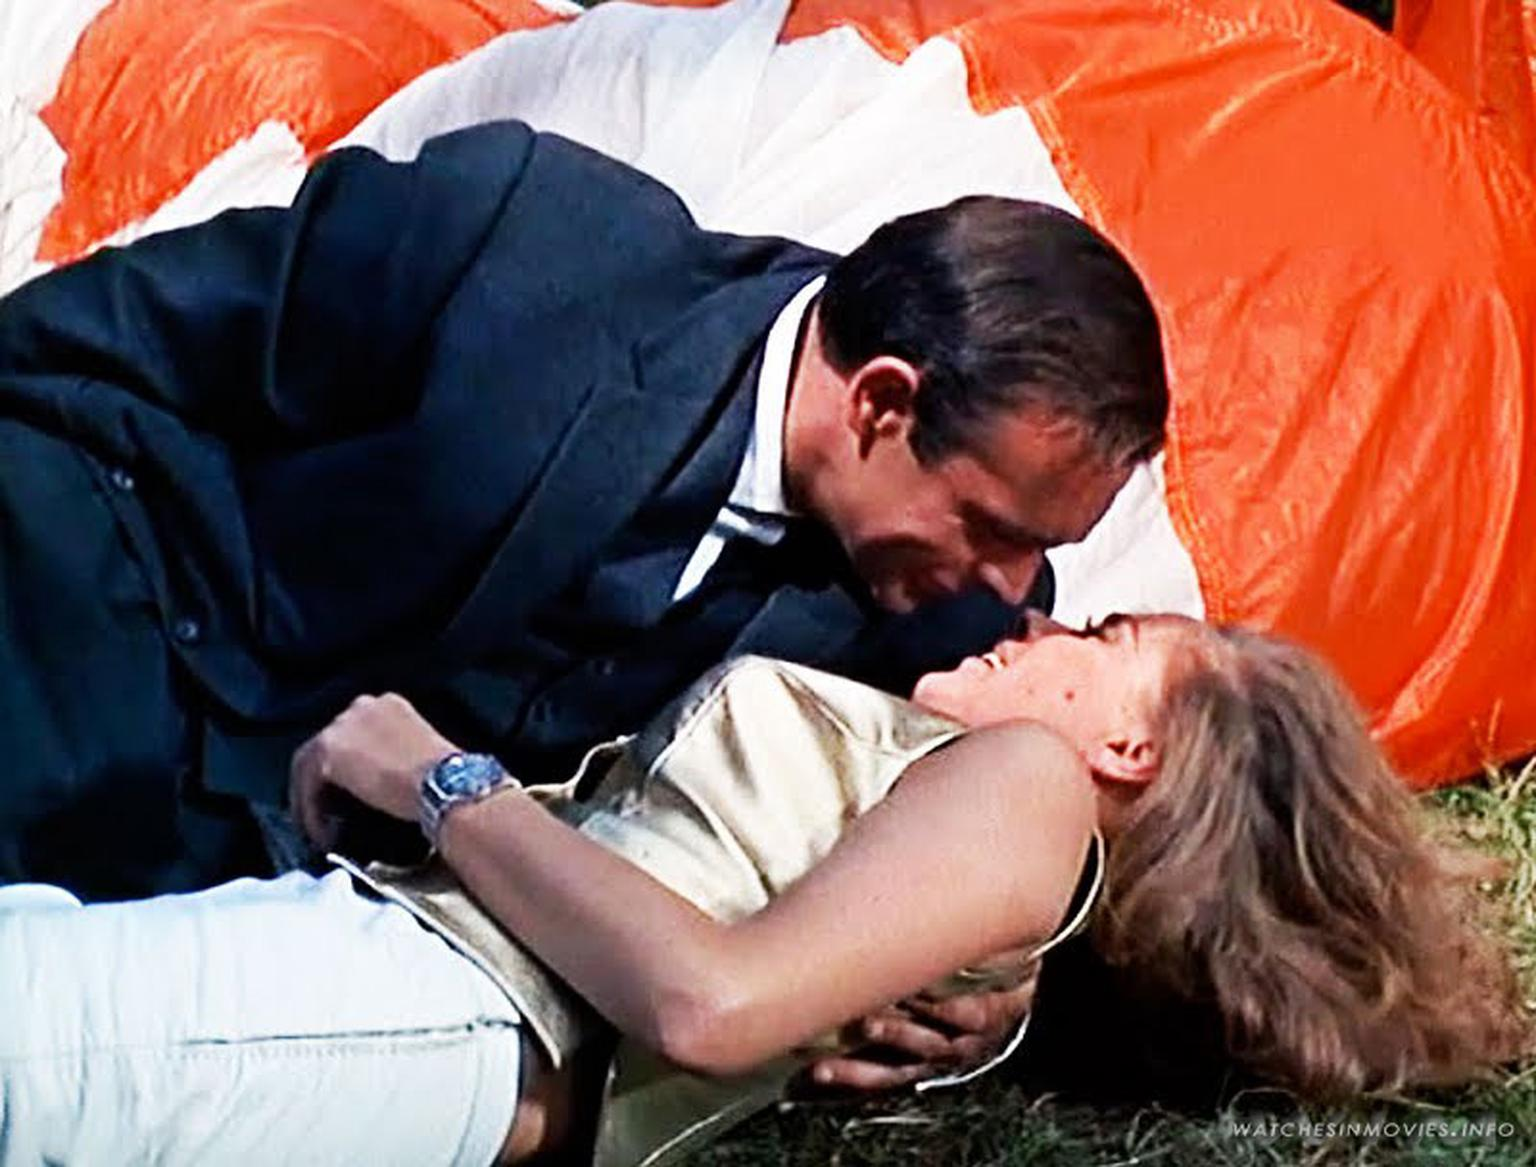 In Goldfinger, a couple of other Rolex watch models also made cameo appearances, including on the wrist of character Pussy Galore playing Goldfinger's sexy pilot who wears a men's Rolex GMT-Master model.